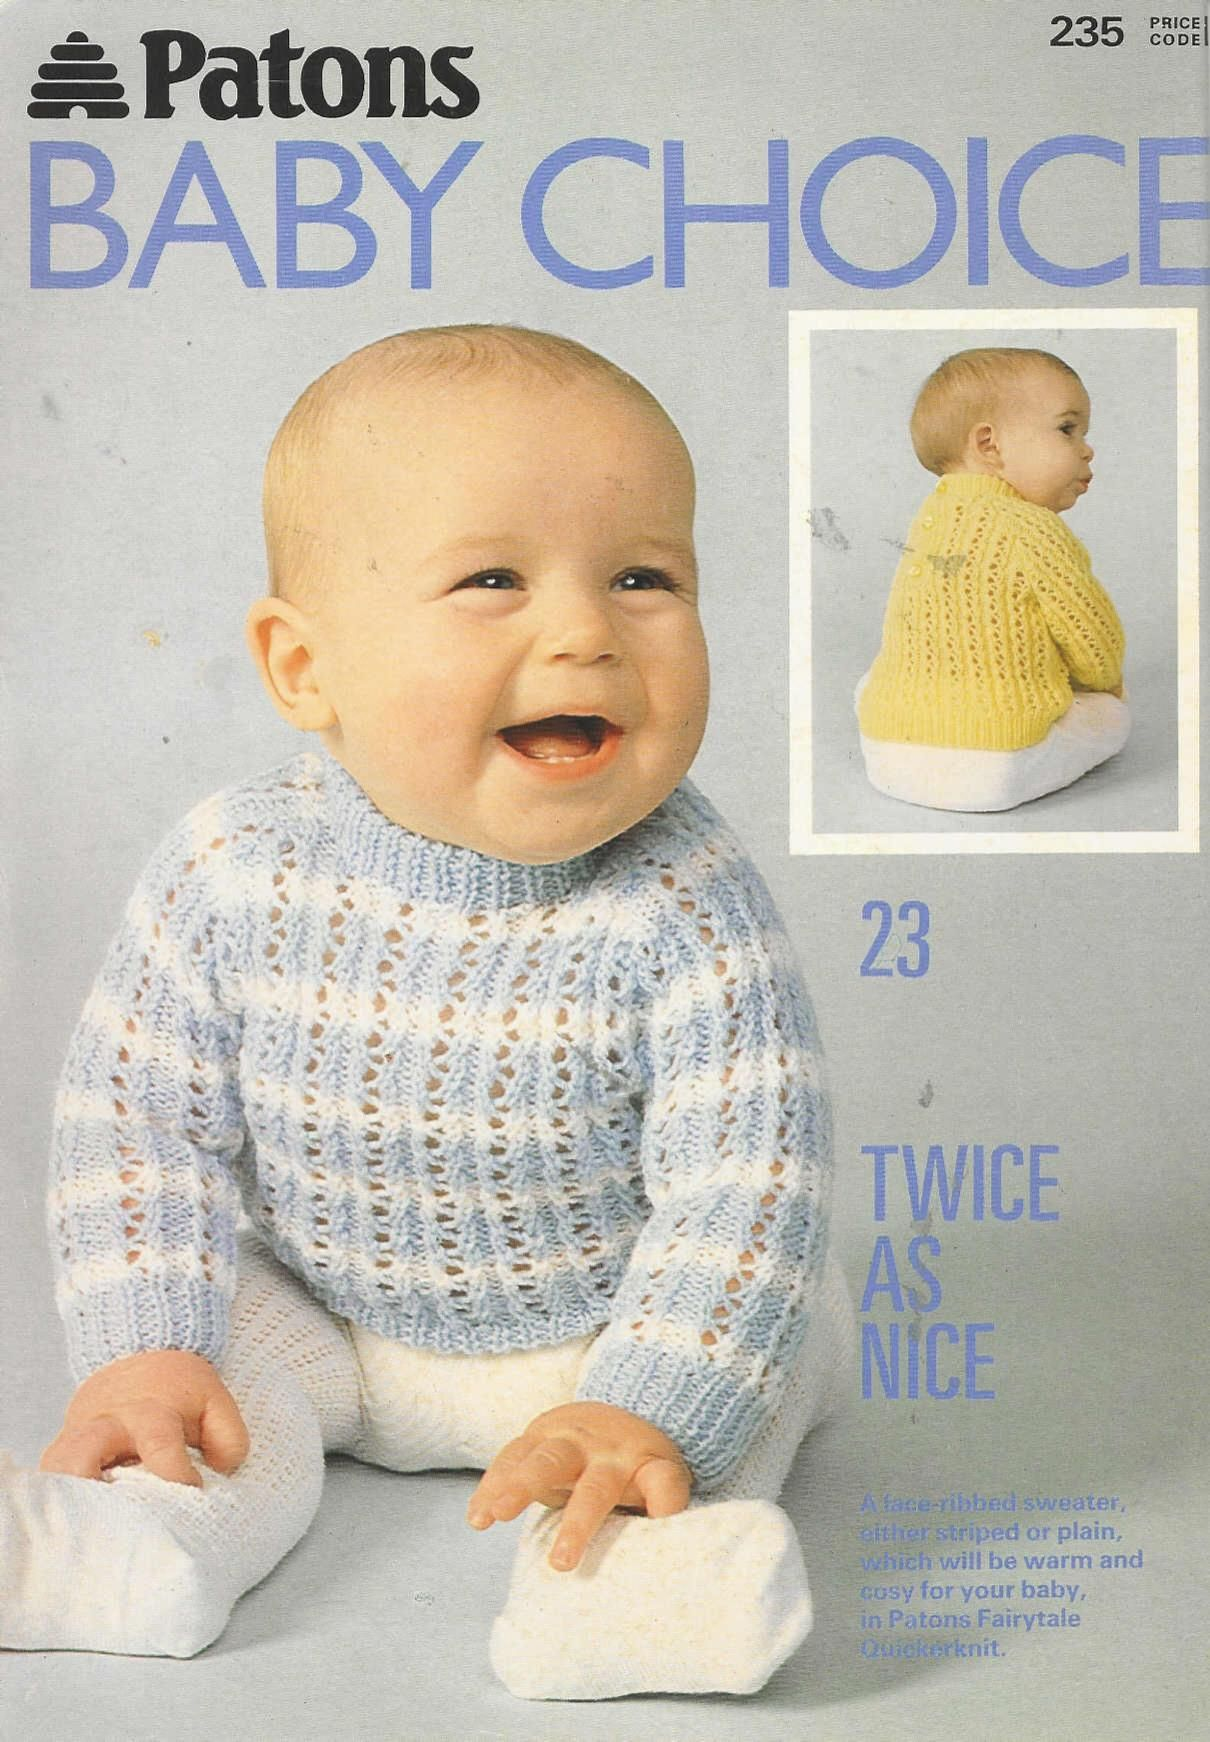 Patons 235 Baby s Choice | Baby knitting magazines | Pinterest ...